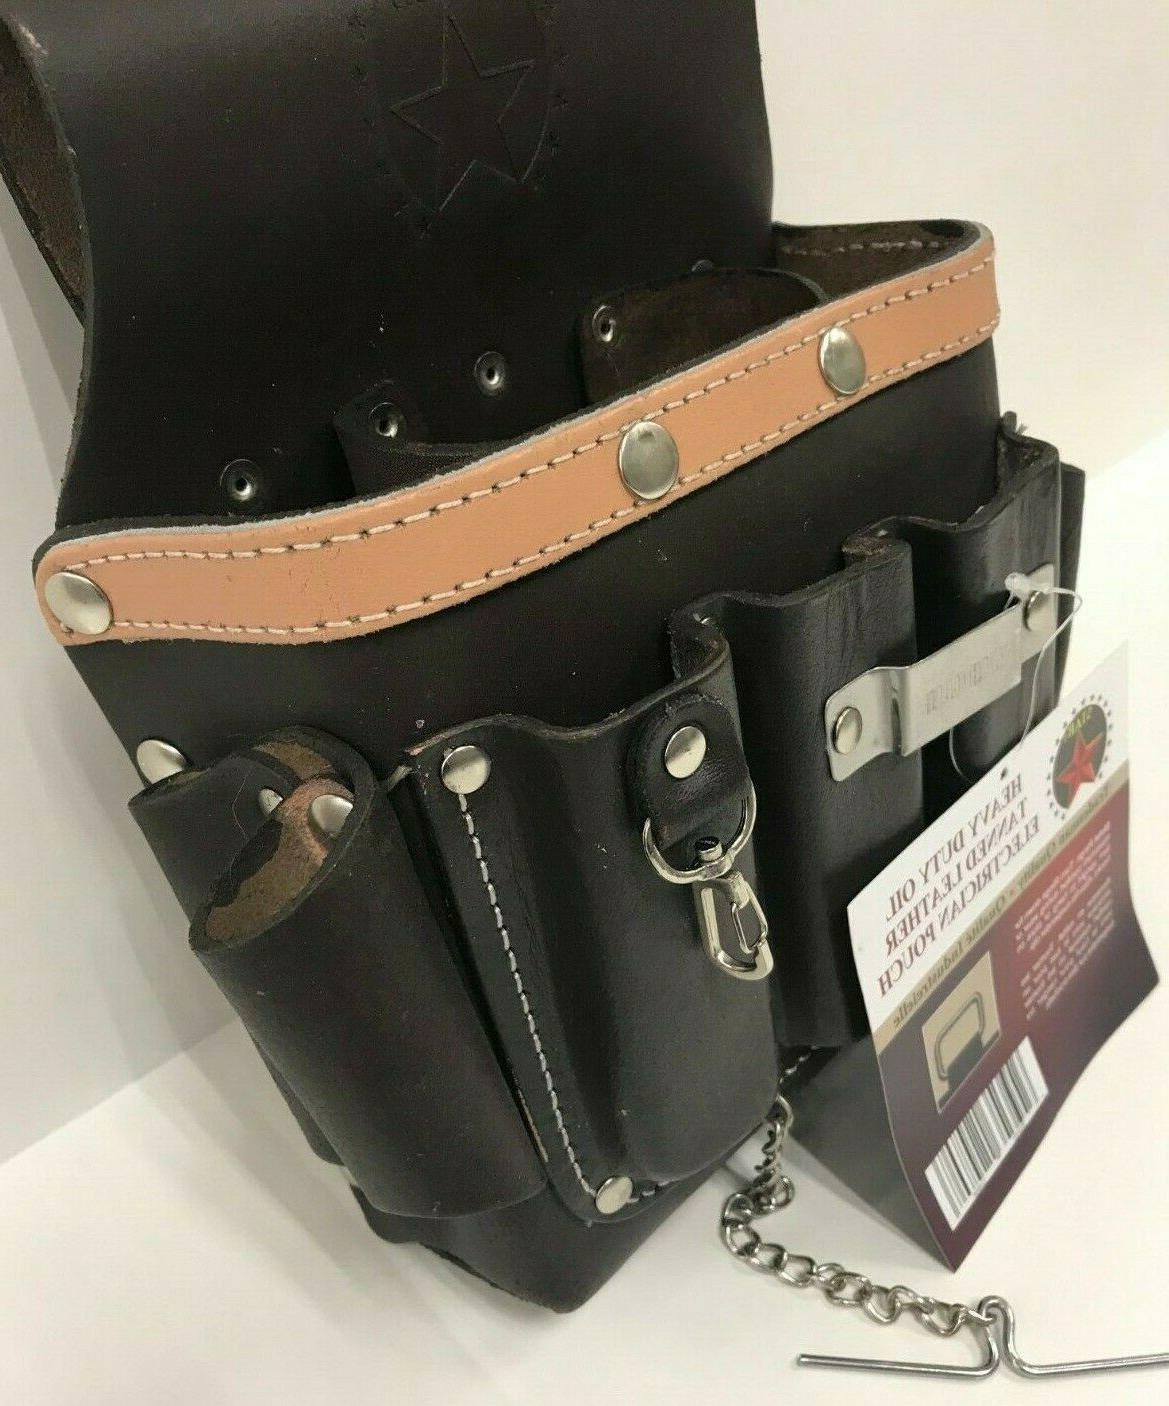 10 Bag Pouch Tanned Leather +Top Belt